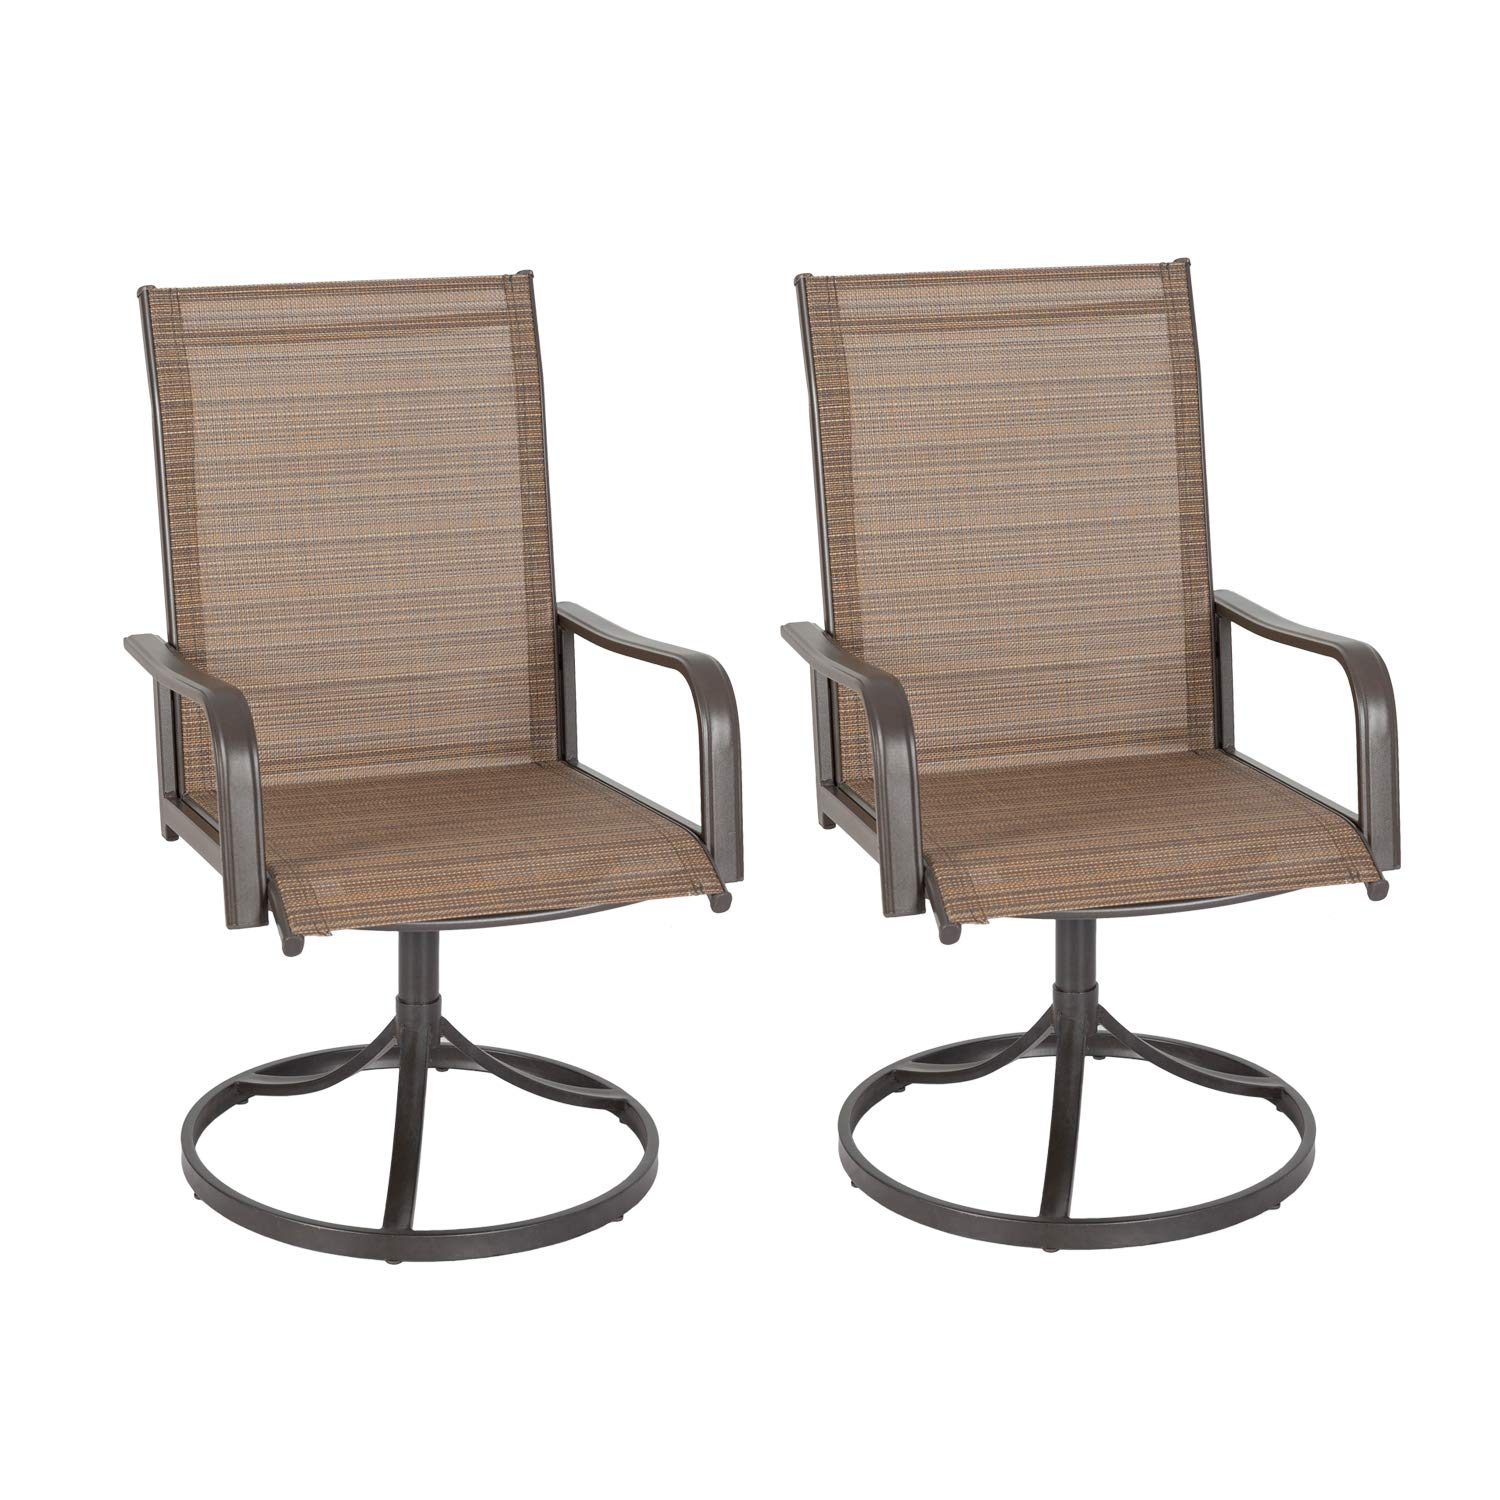 Ulax furniture Outdoor Patio Steel Swivel Dining Chair(s) with Sling Seat Set of 2 by Ulax furniture